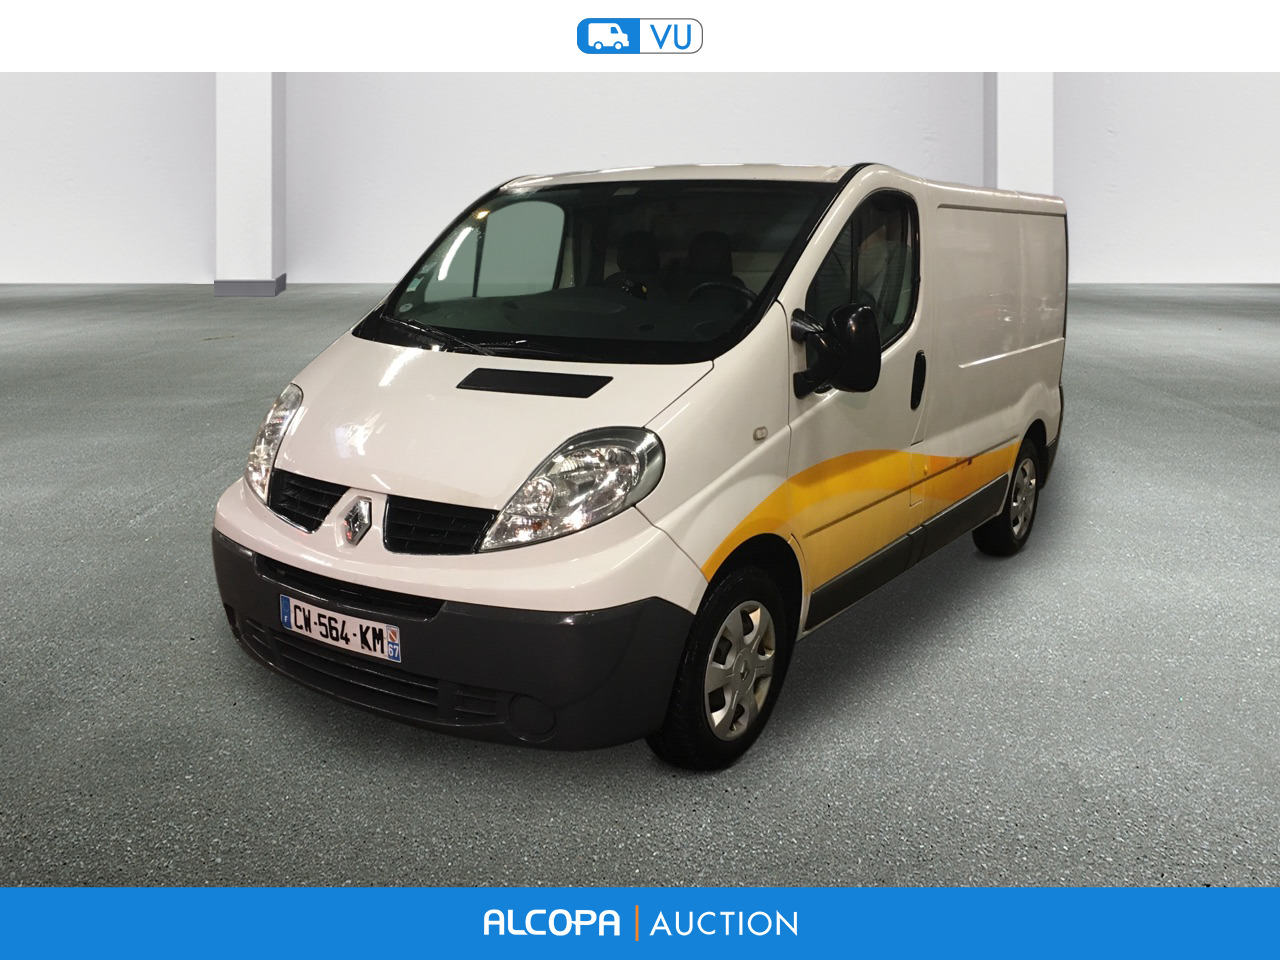 renault trafic trafic fg l1h1 1000kg dci 90 grand confort nancy alcopa auction. Black Bedroom Furniture Sets. Home Design Ideas